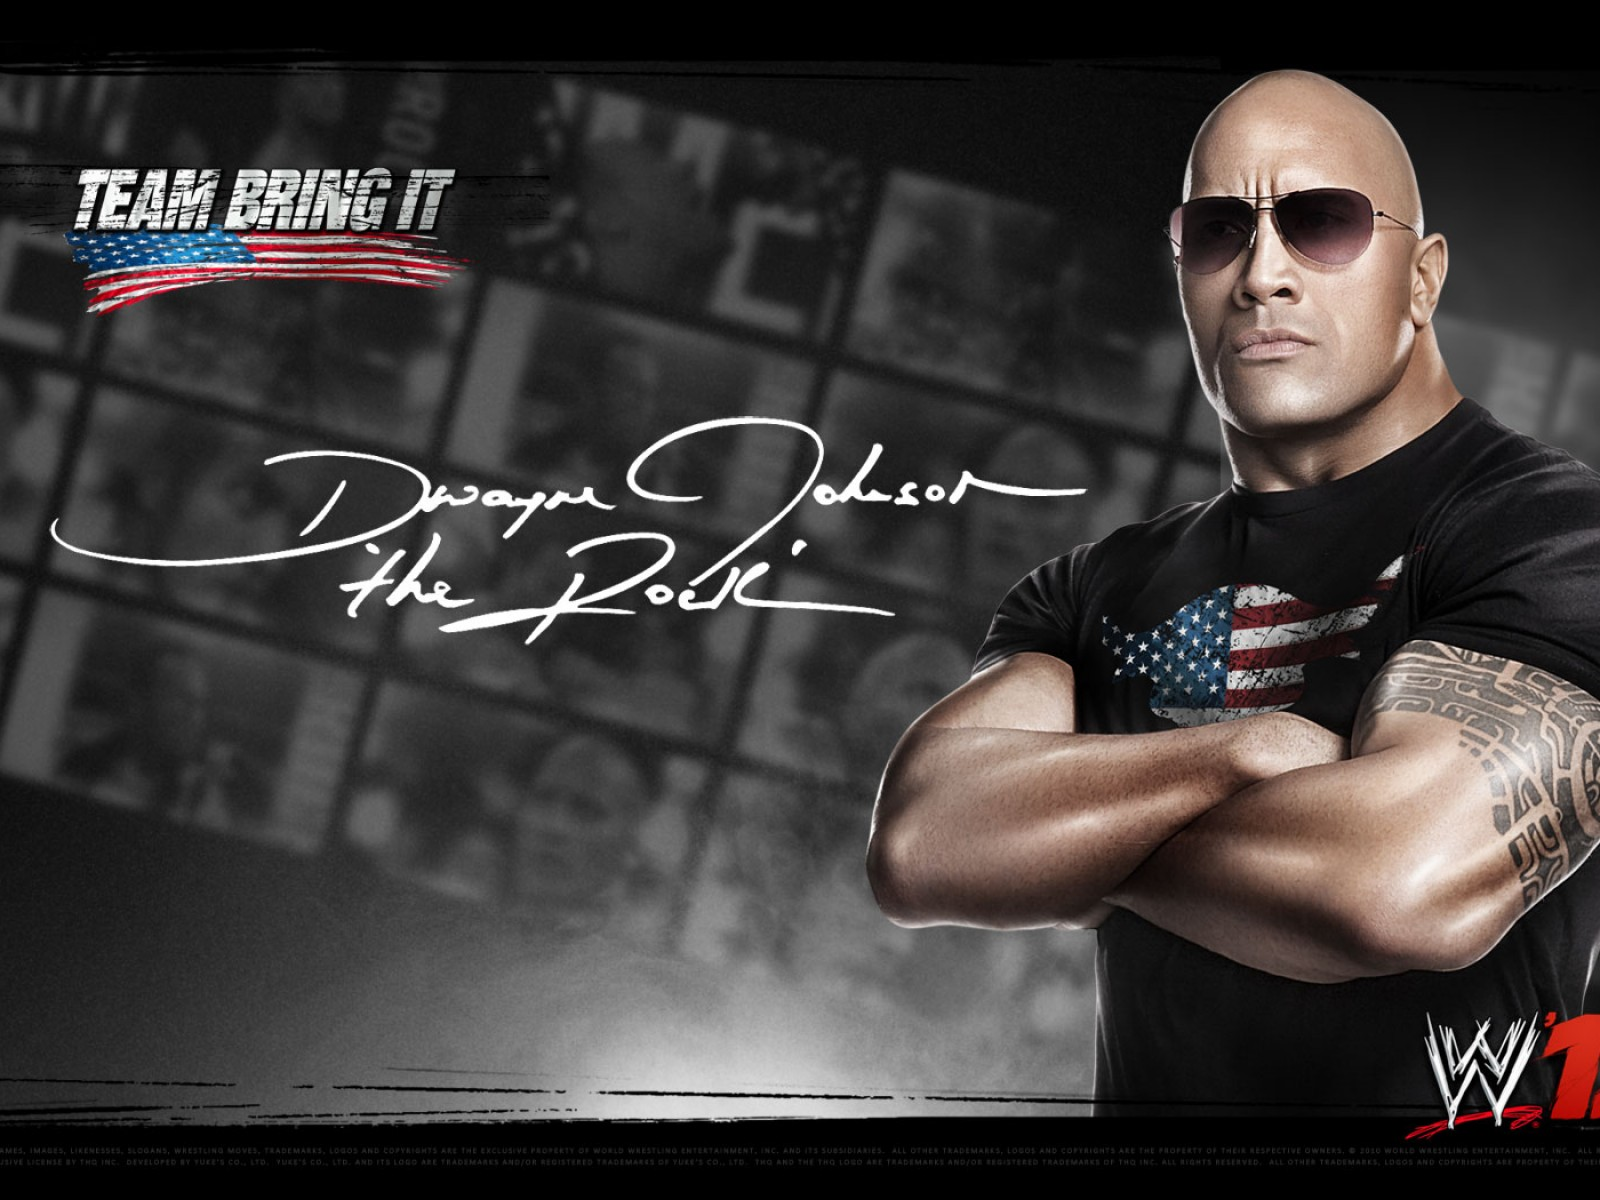 All About Wrestling Stars: The Rock Wallpapers